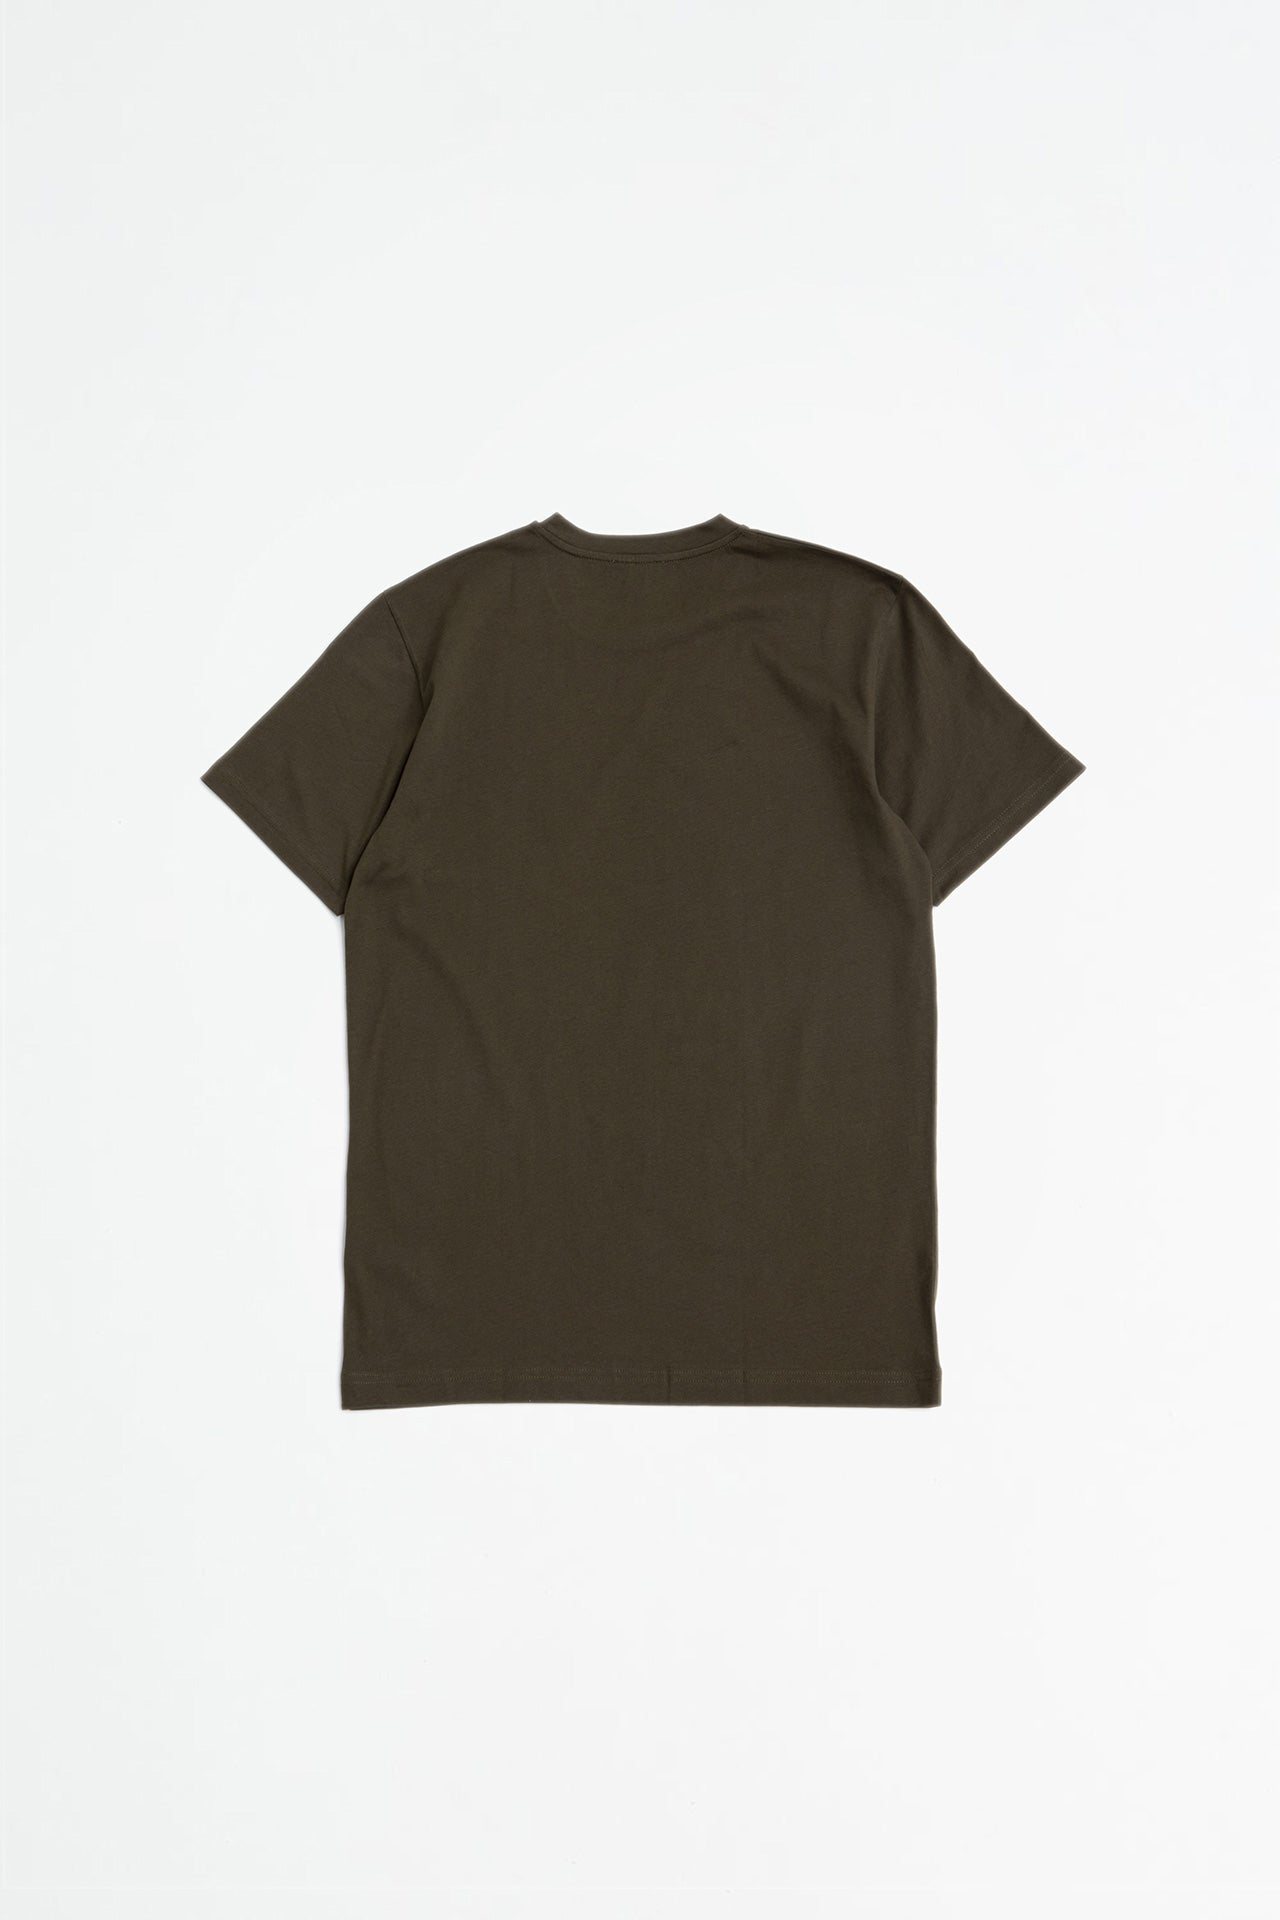 Riviera t-shirt military green